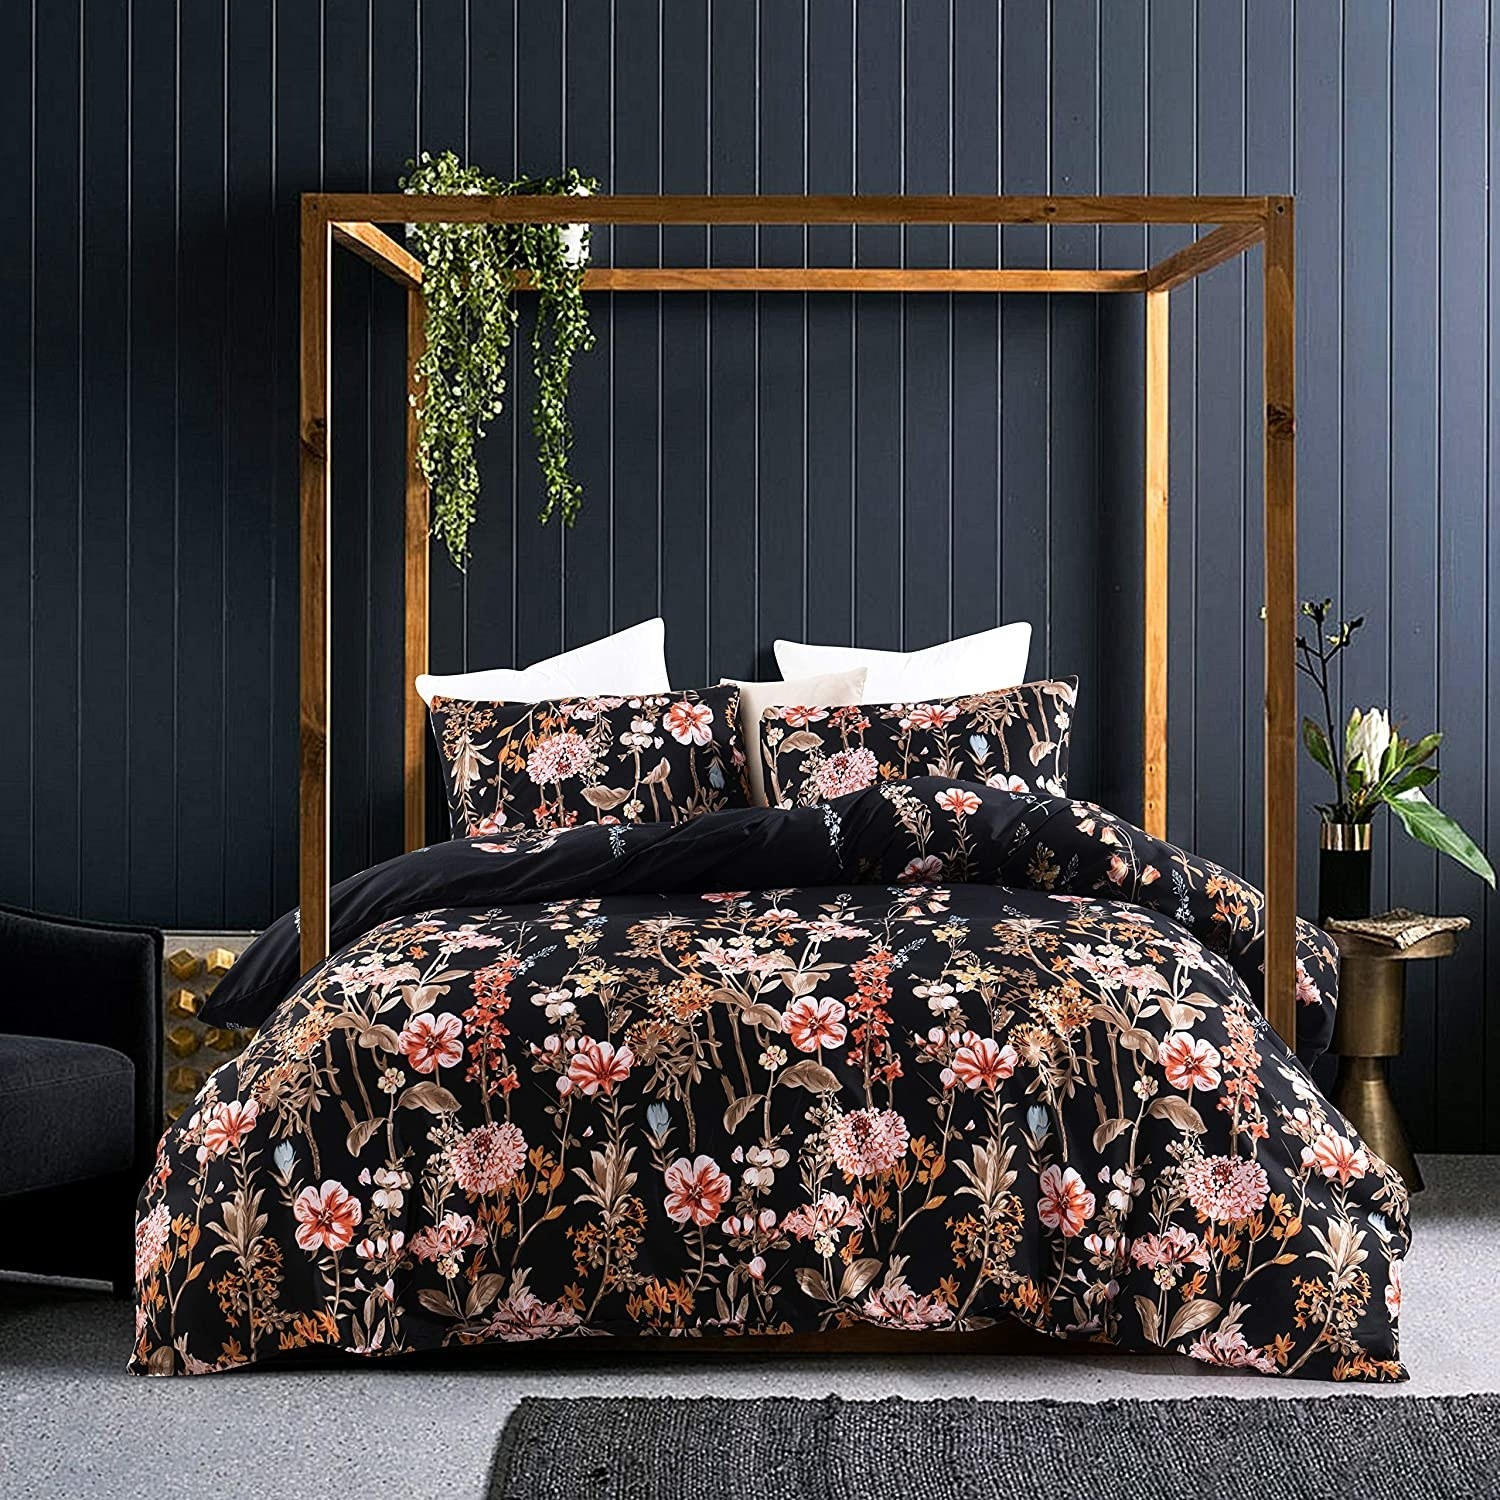 a black comforter with pink florals on it